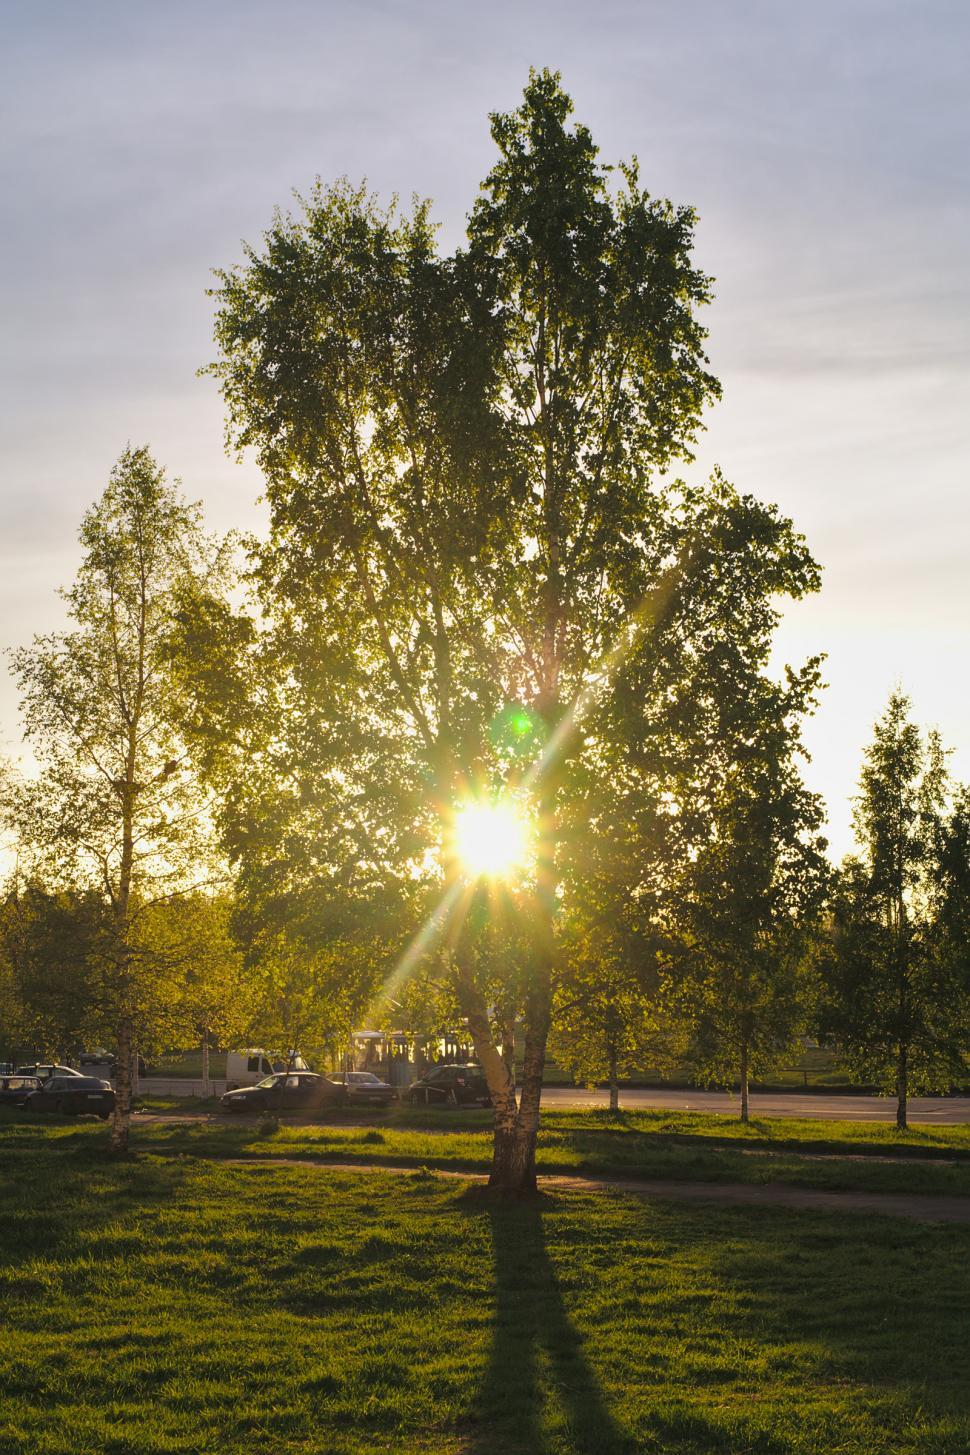 Download Free Stock Photo of Sun shining through a tree